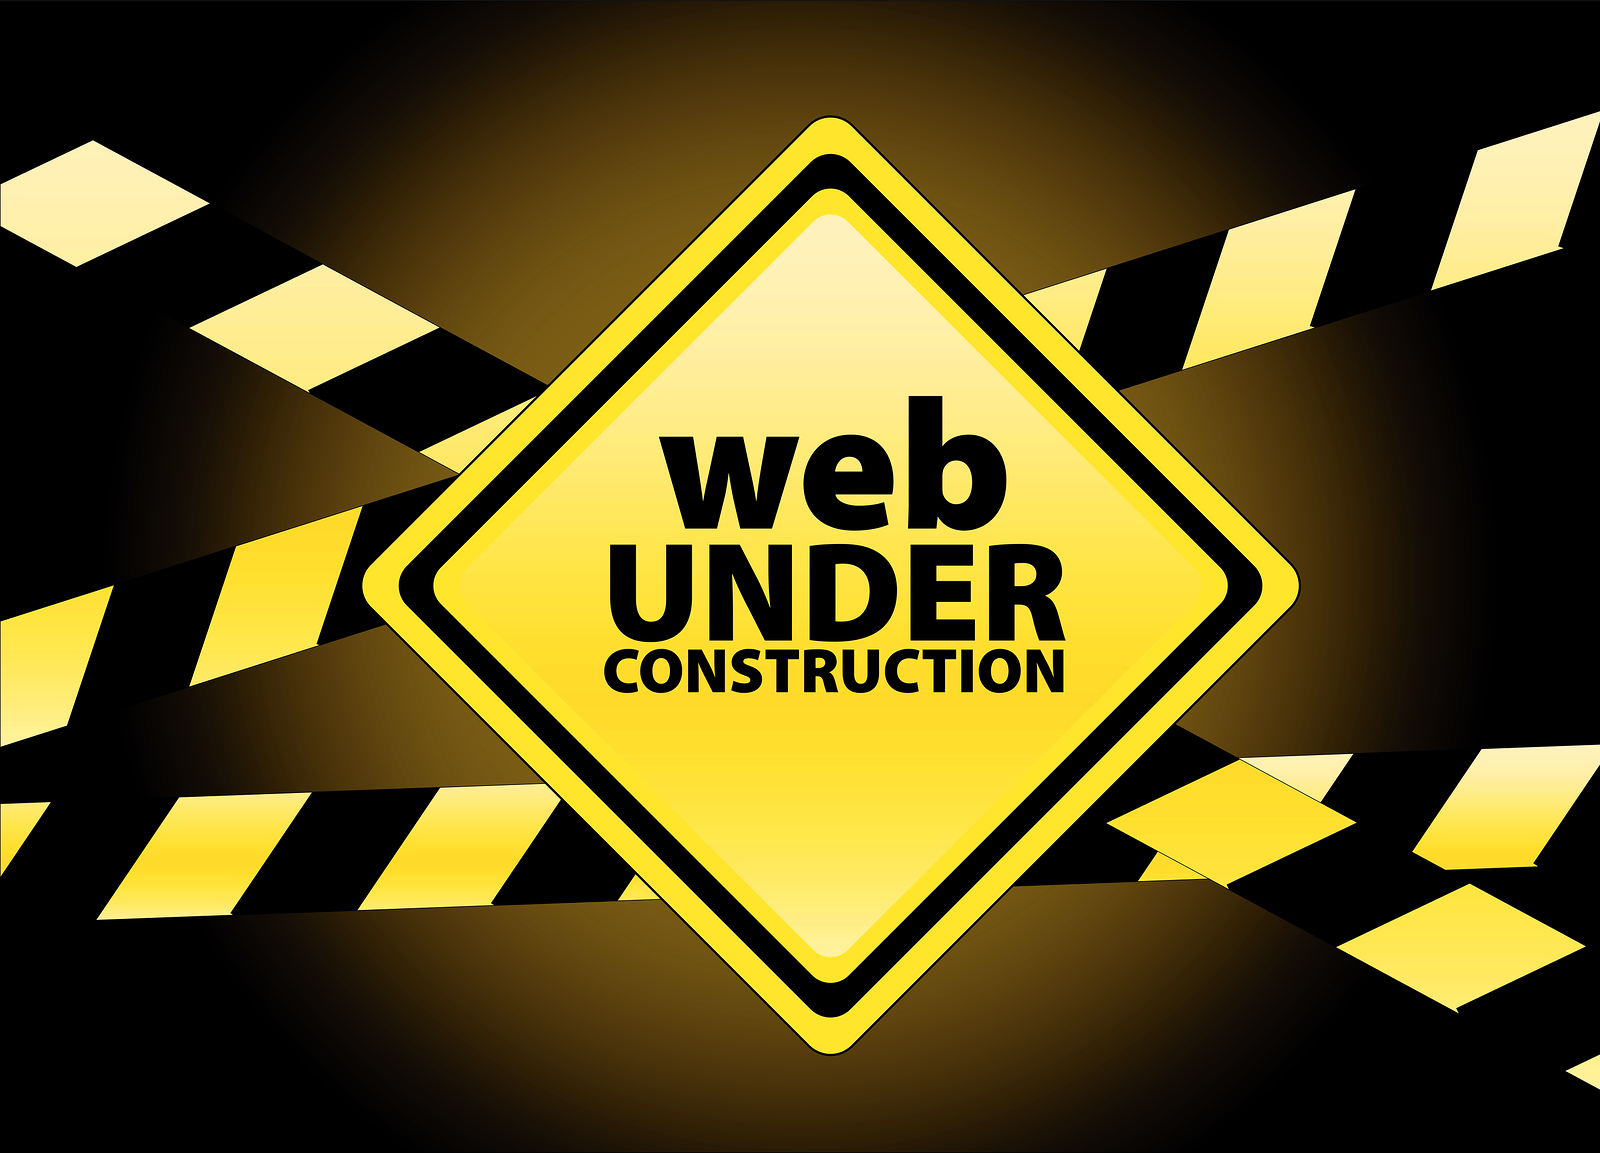 Website Under Construction! Come Visit Again Soon!